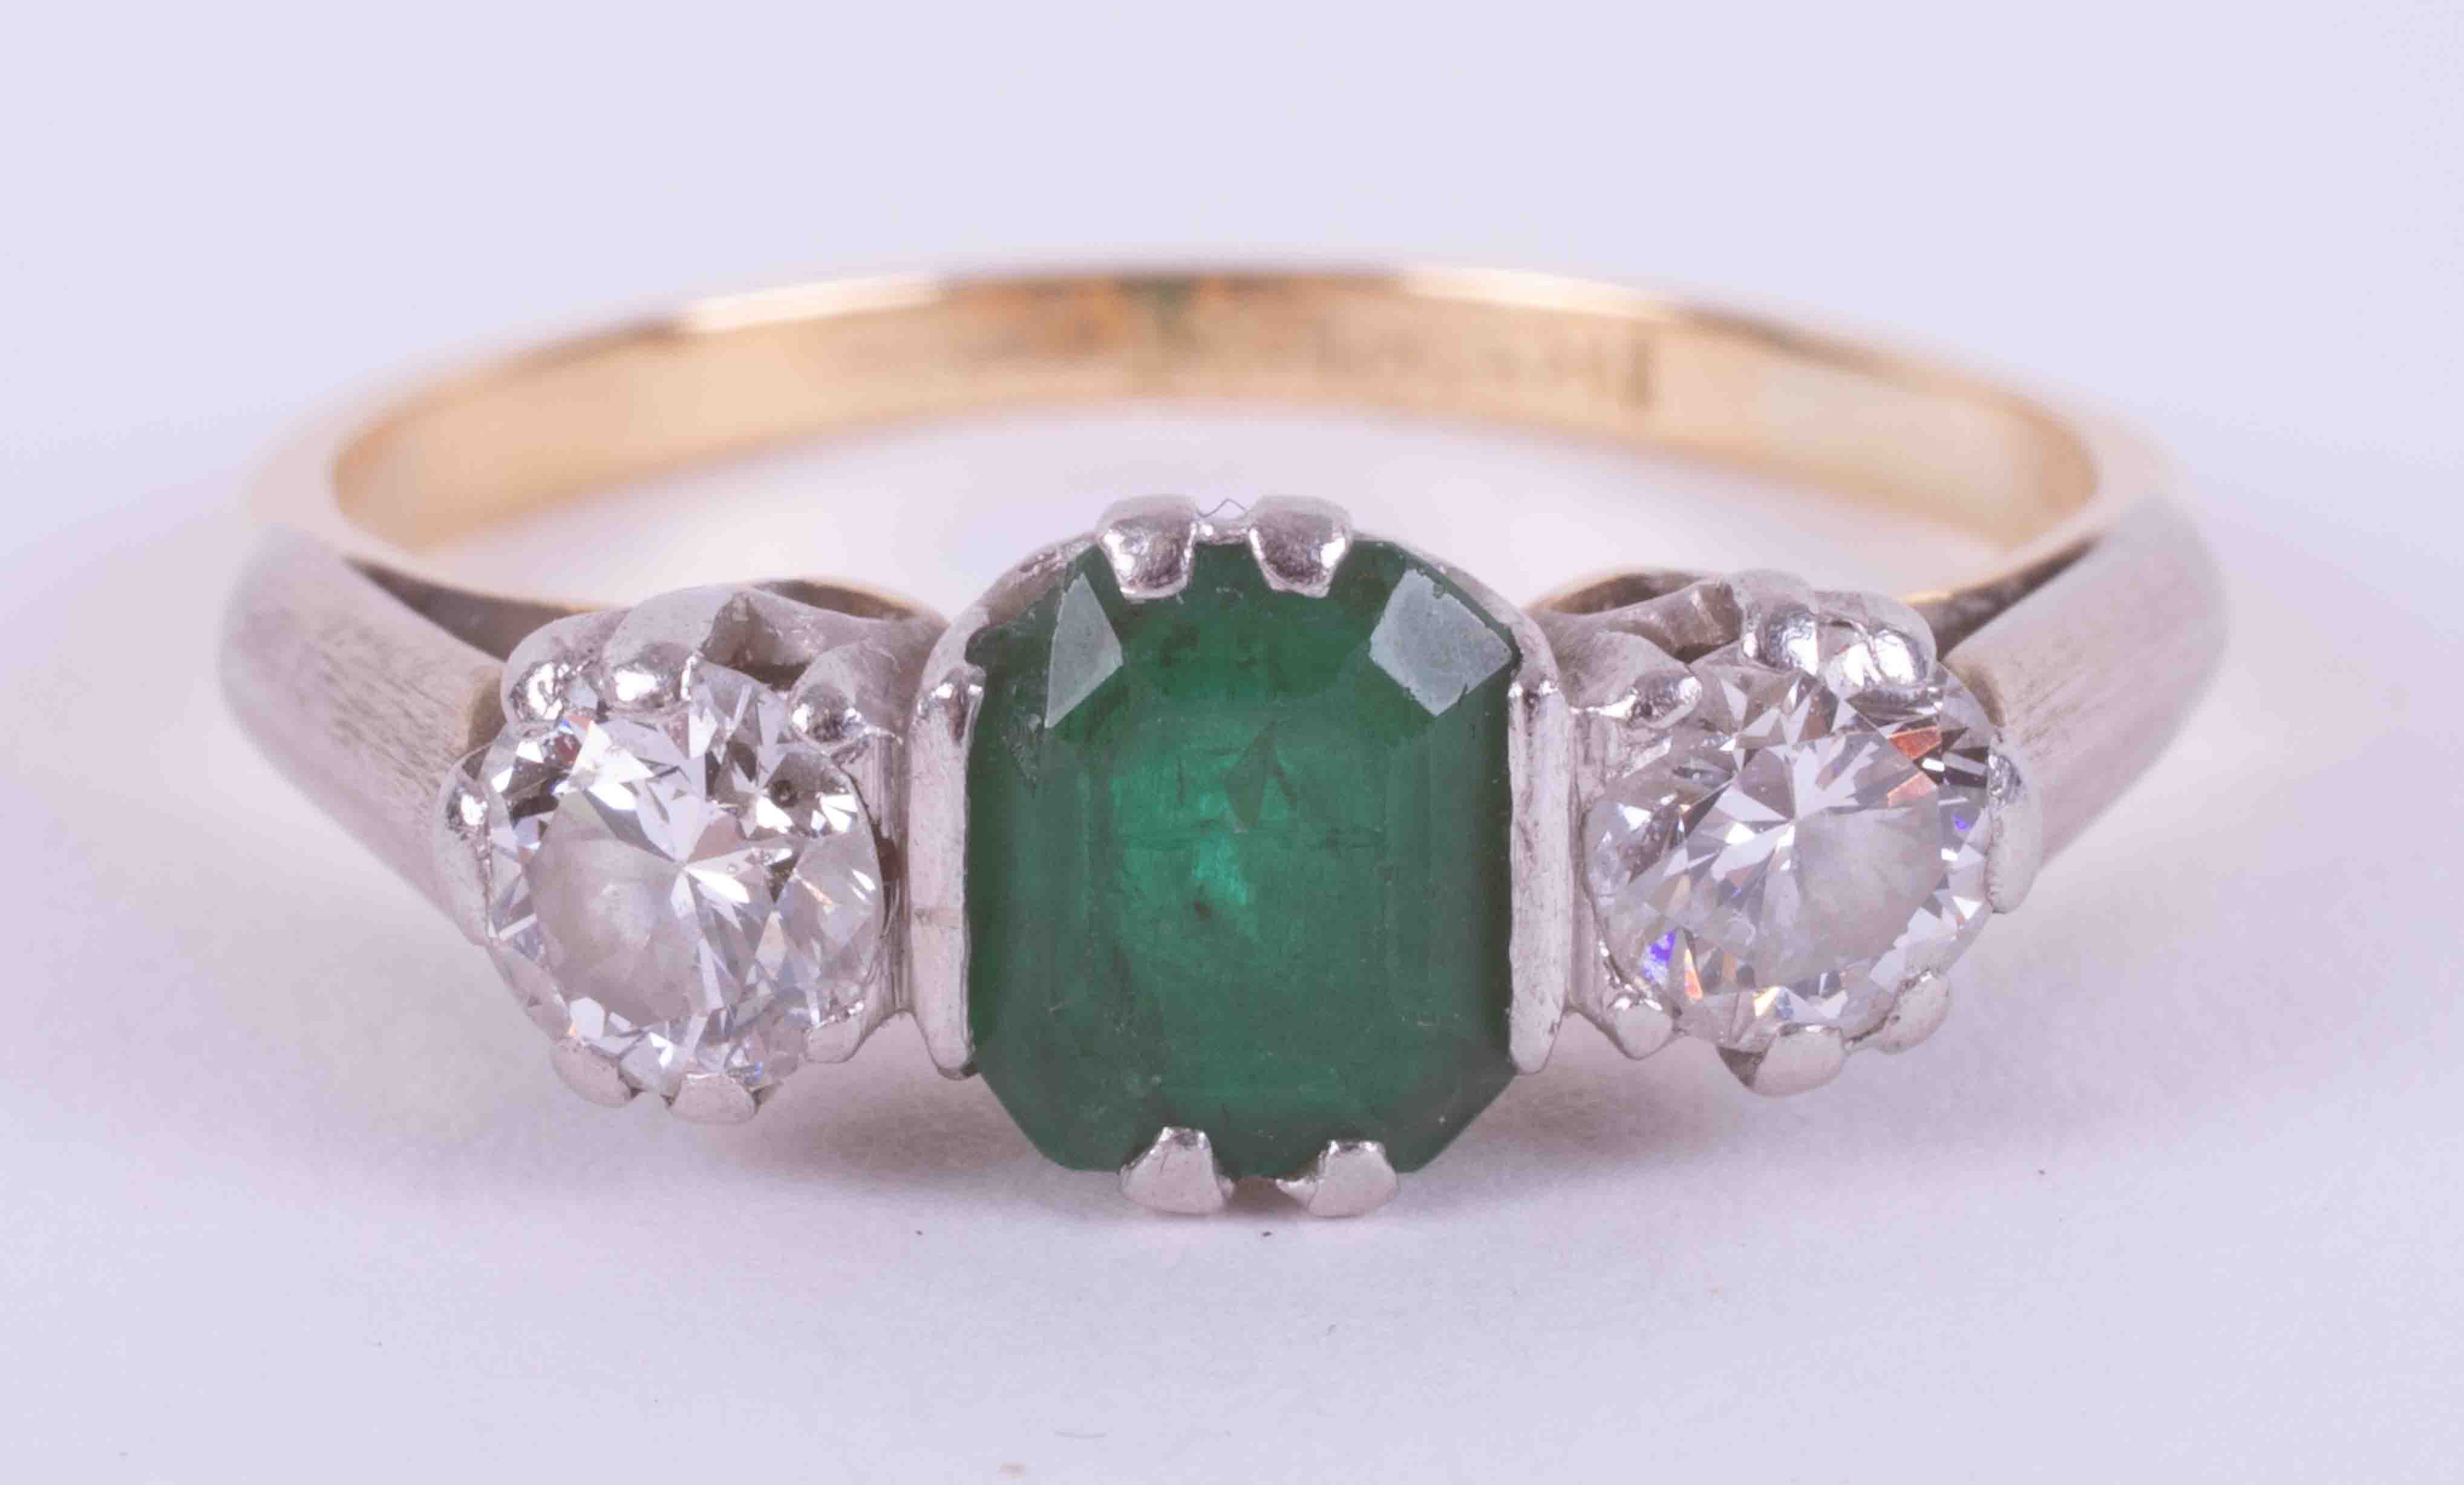 An 18ct yellow gold & platinum three stone ring set with a central emerald cut emerald, approx. 0.50